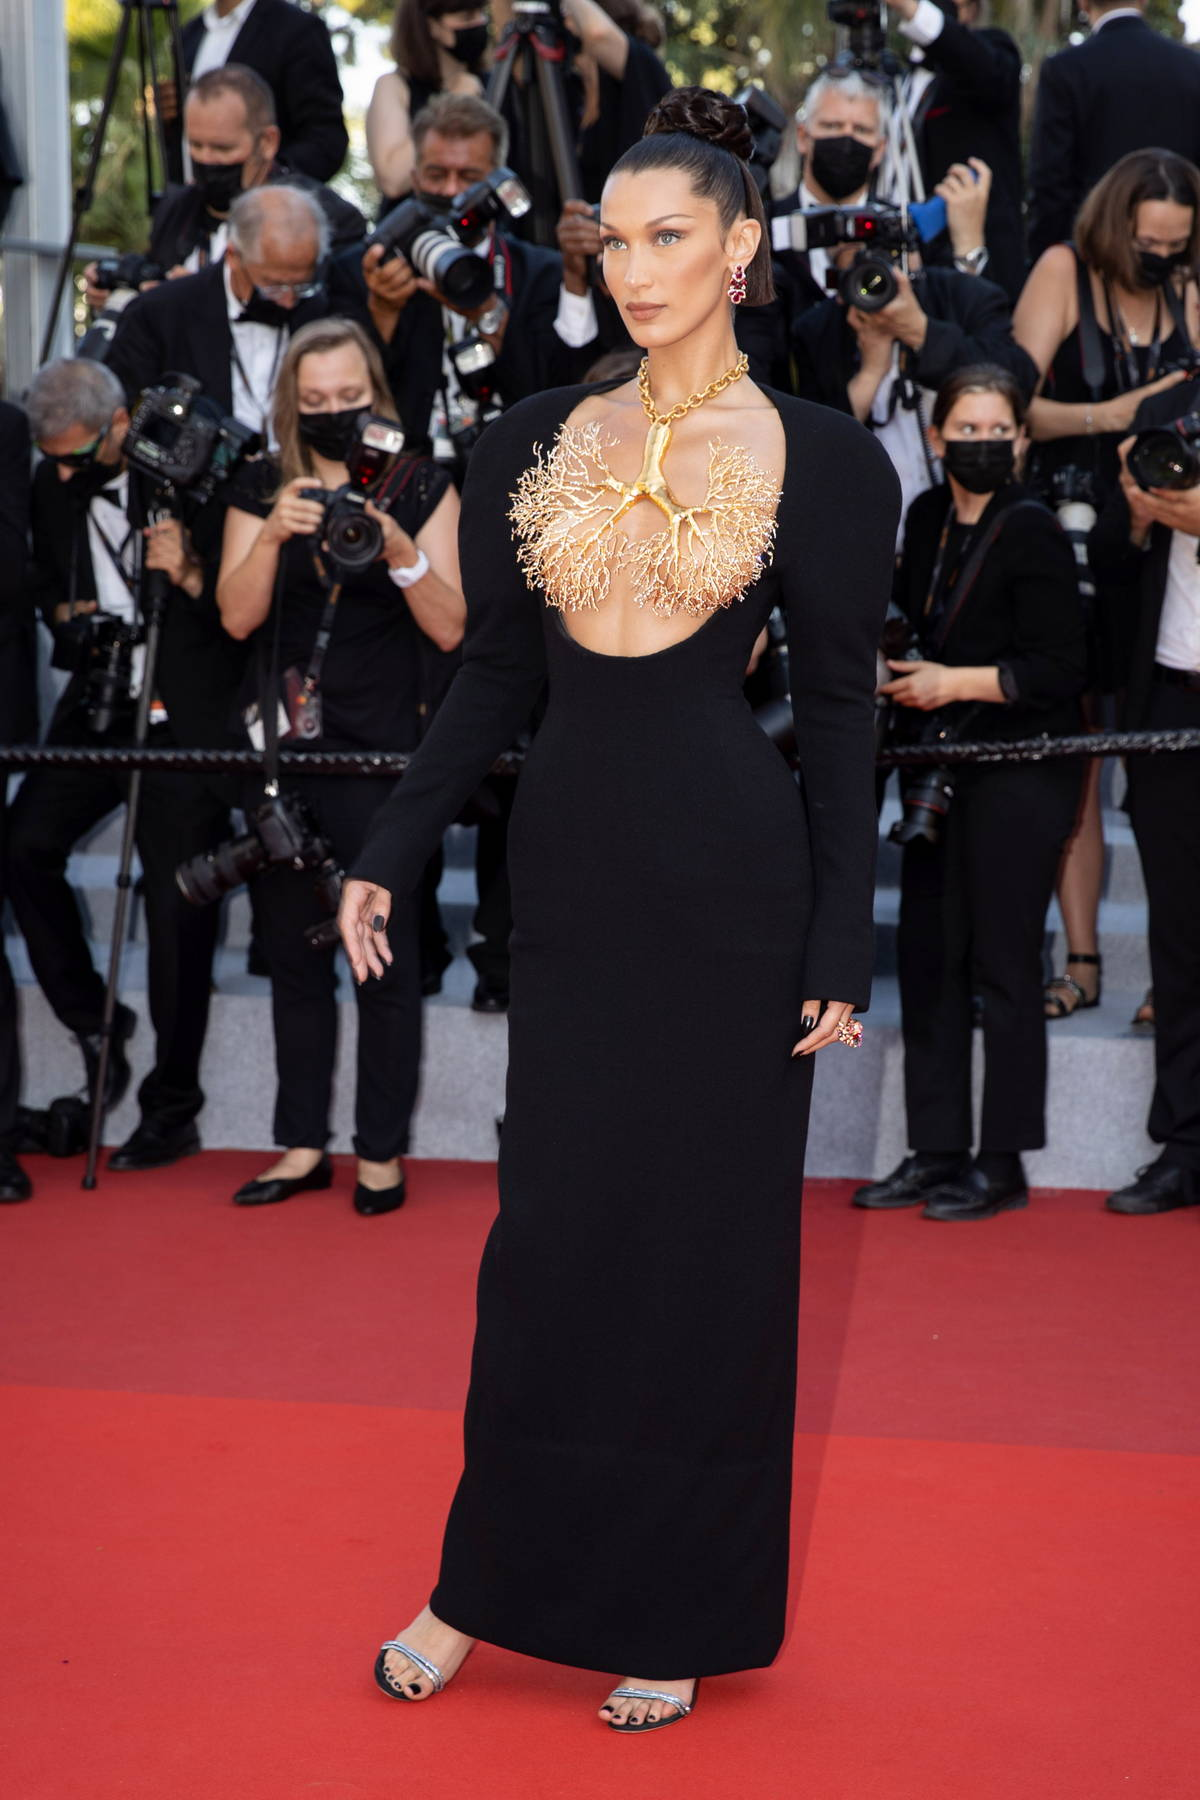 Bella Hadid attends the screening of 'Tre Piani' during the 74th annual Cannes Film Festival in Cannes, France